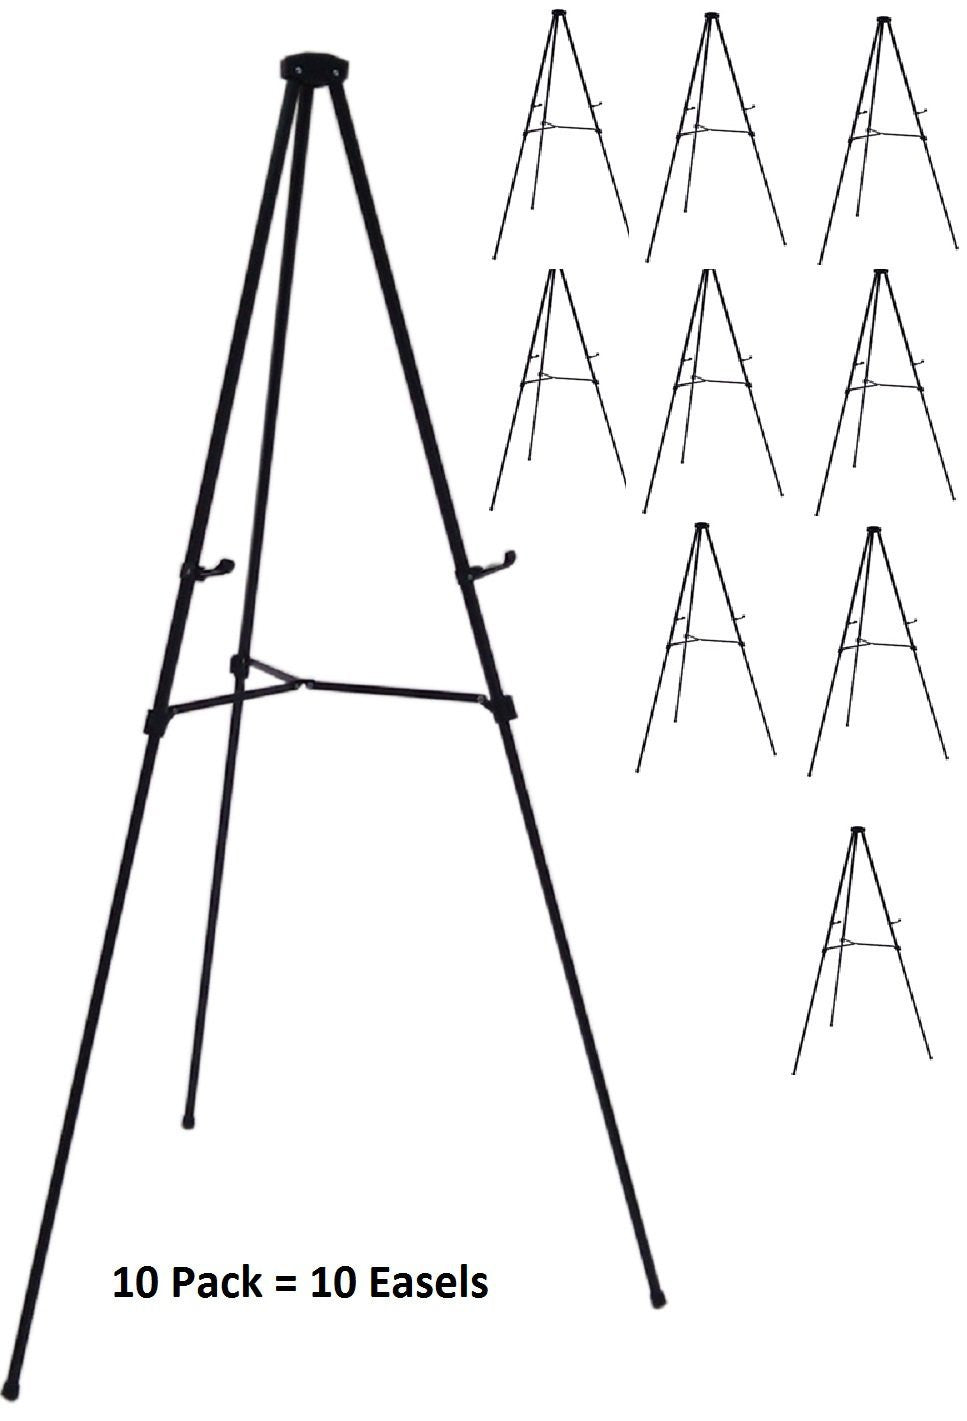 Pack of 10 Lightweight Aluminum Telescoping Display Easel, Black (10 pack)